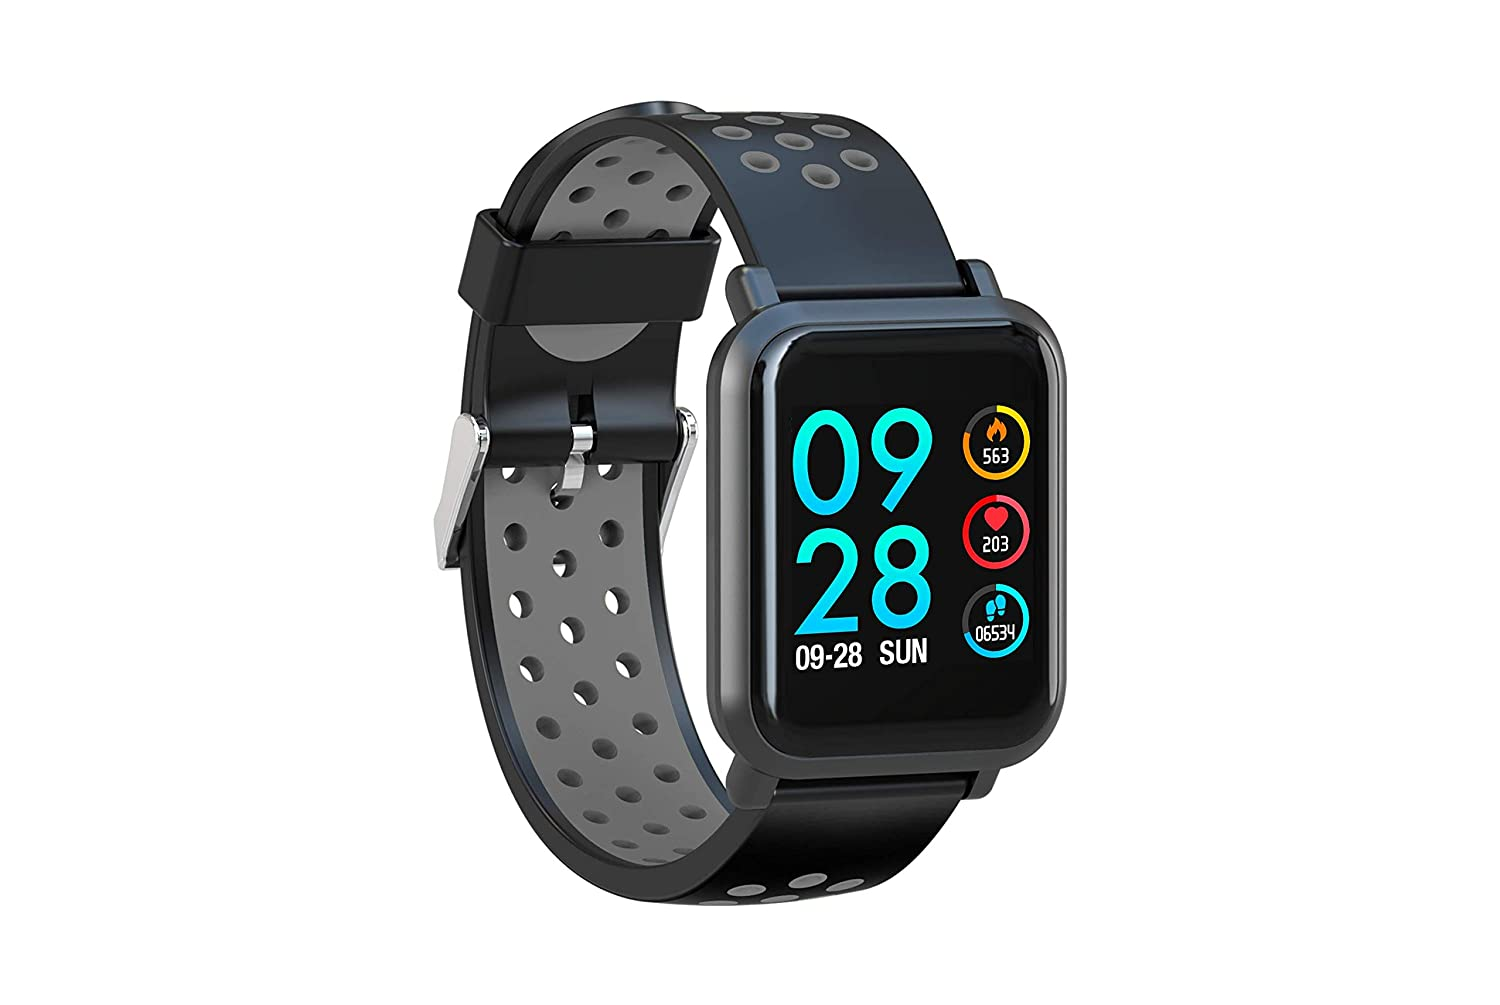 AQFIT Multifunction Smart Watch W8 (Gray Black) Best Sports Watches For Men to Buy Right Now in India